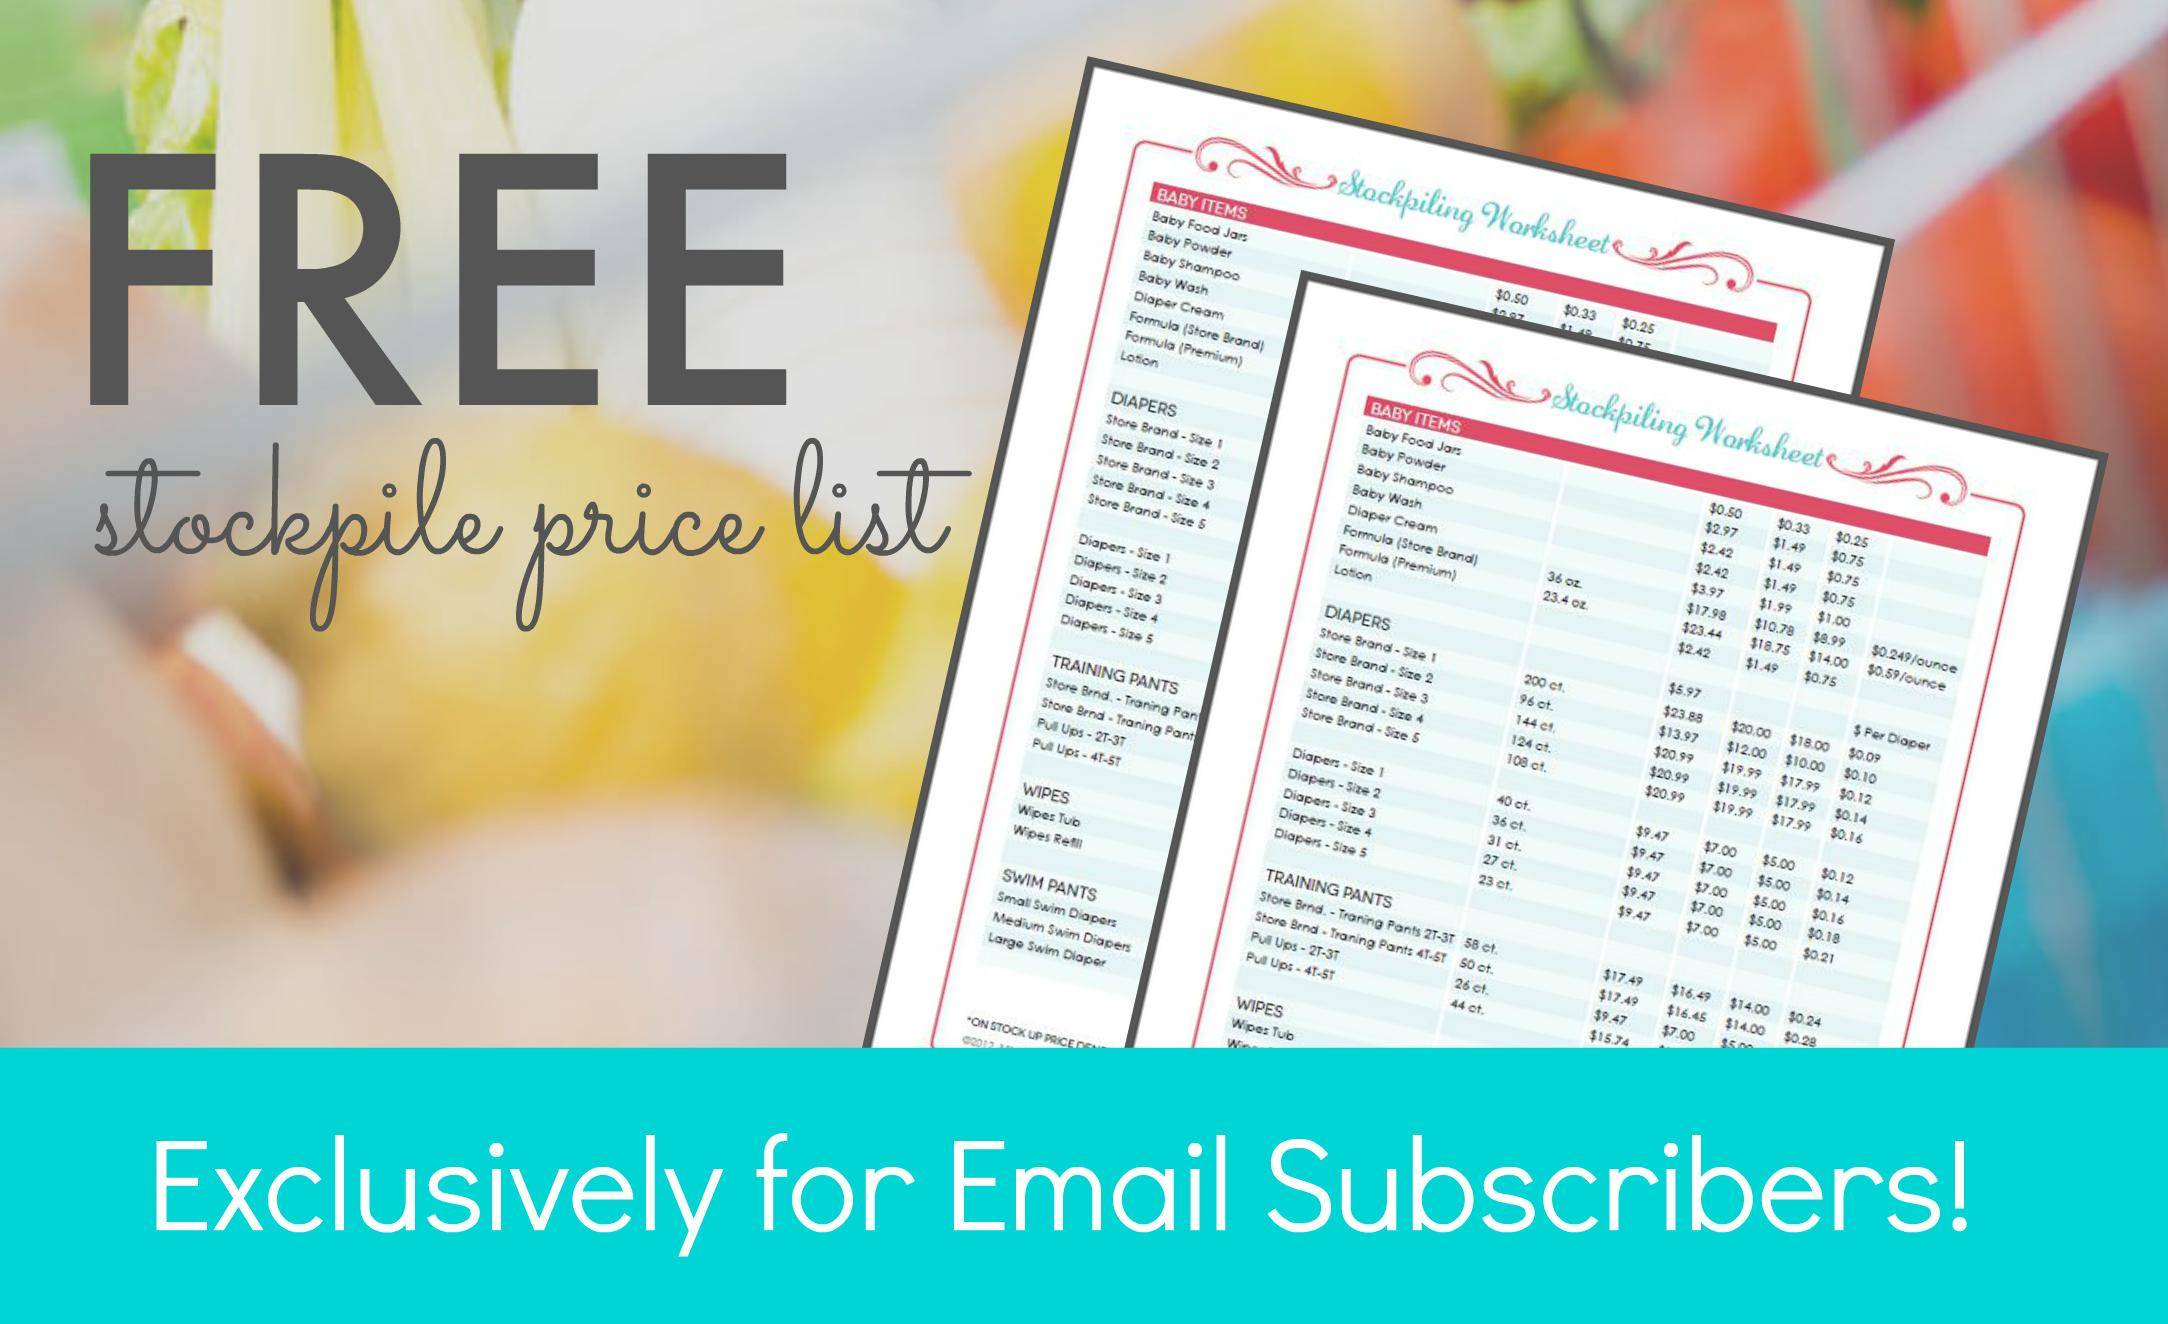 free stockpile price list for email subscribers